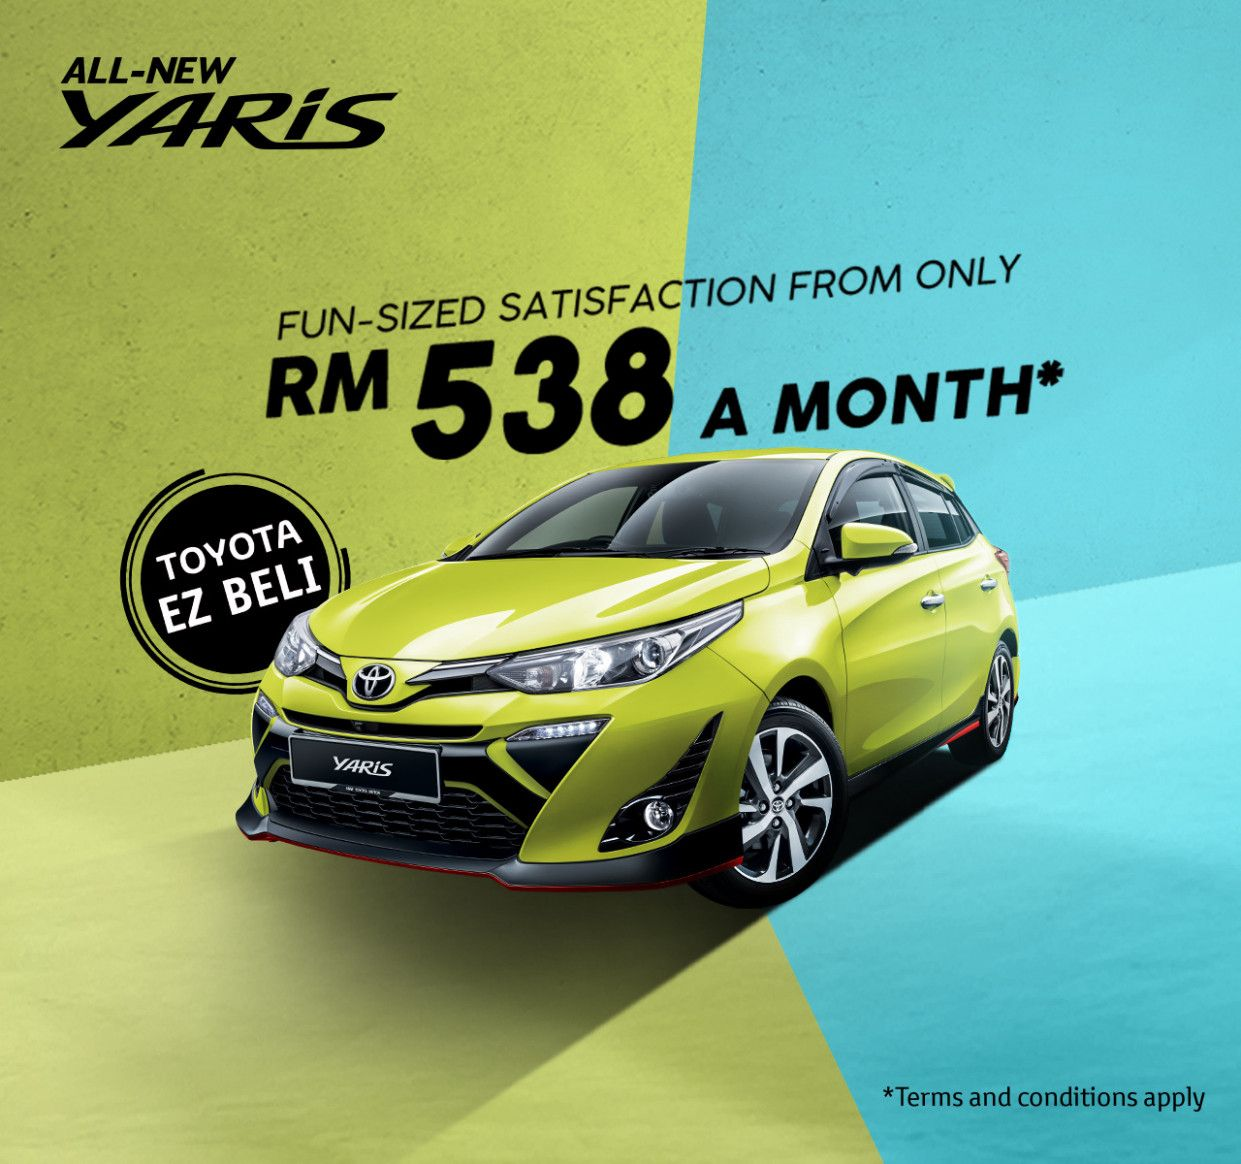 6 Wallpaper Toyota Malaysia Price List 2020 In 2020 Toyota Vios Toyota Civic Car